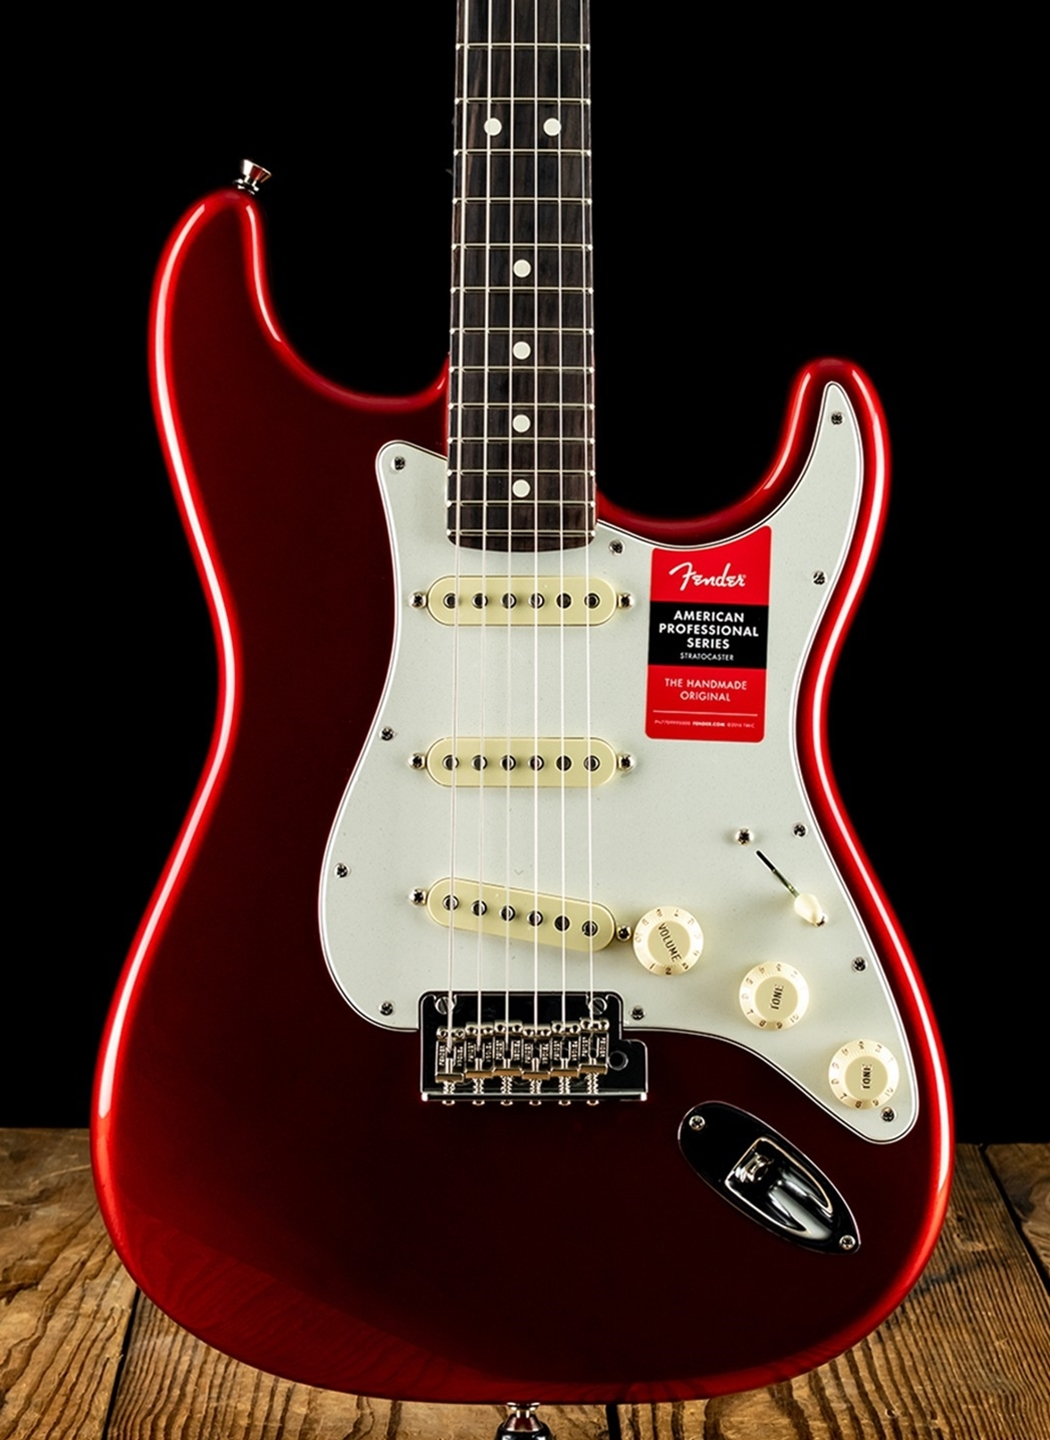 58bbb3d0e92 Fender American Professional Stratocaster - Candy Apple Red